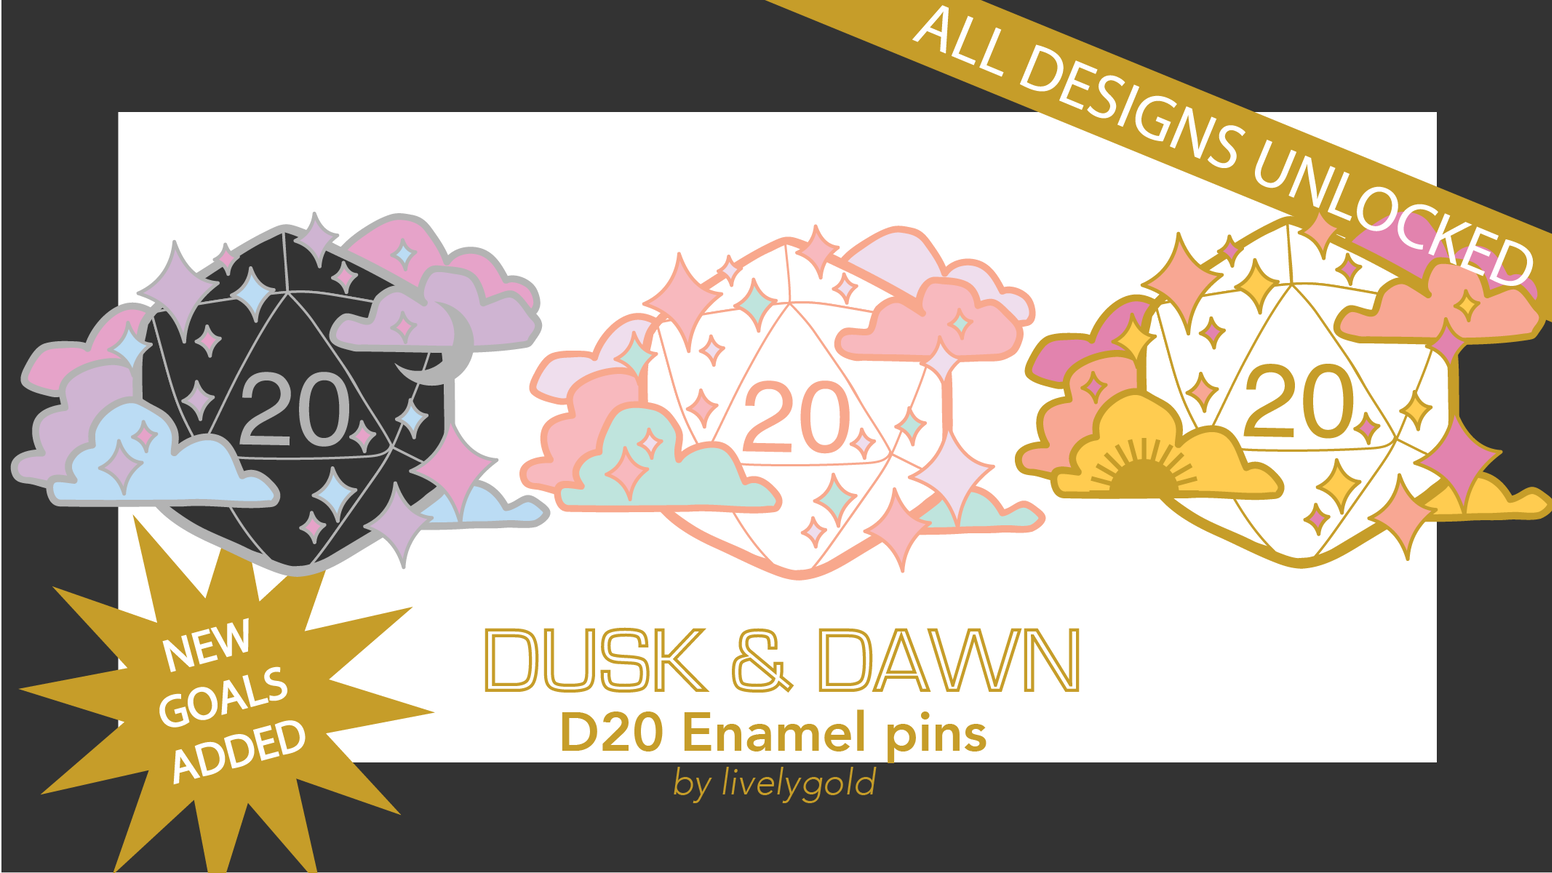 For future updates and pins, head tohttps://www.livelygold.com/.Dusk & Dawn is a project that created cute set of enamel pins for DND fans and other rpg adventurers, inspired by the glory of a natural 20.